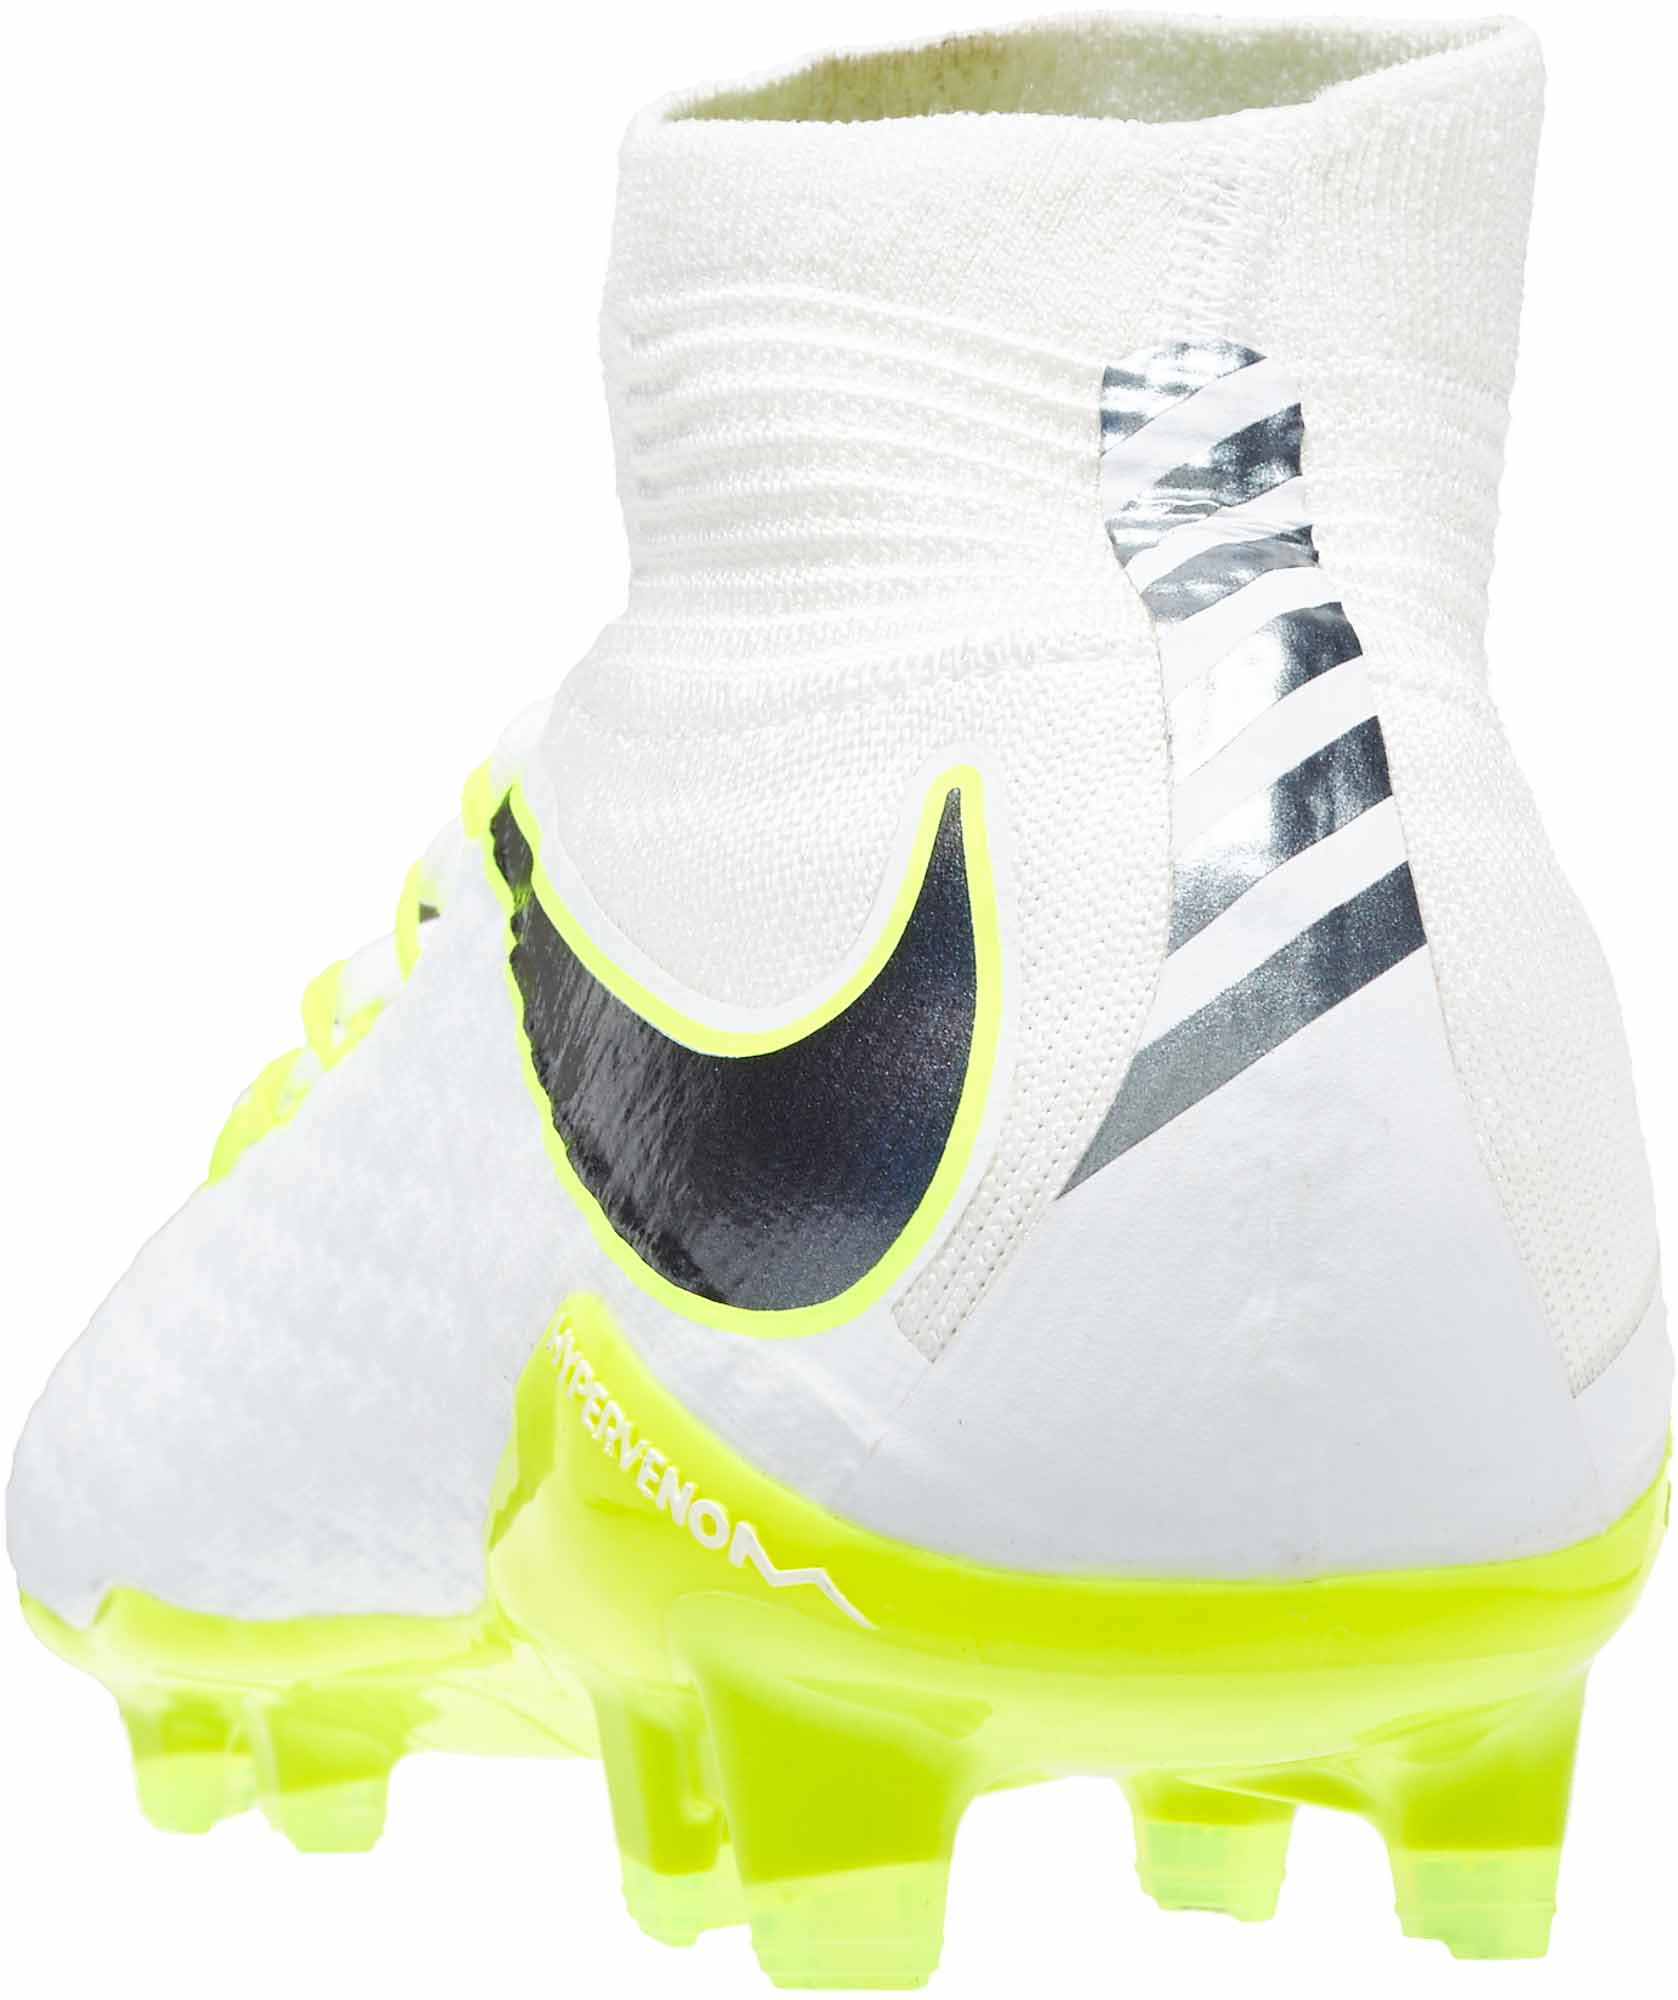 5a734704ae2 Nike Hypervenom Phantom III Pro DF FG - White Metallic Cool Grey ...